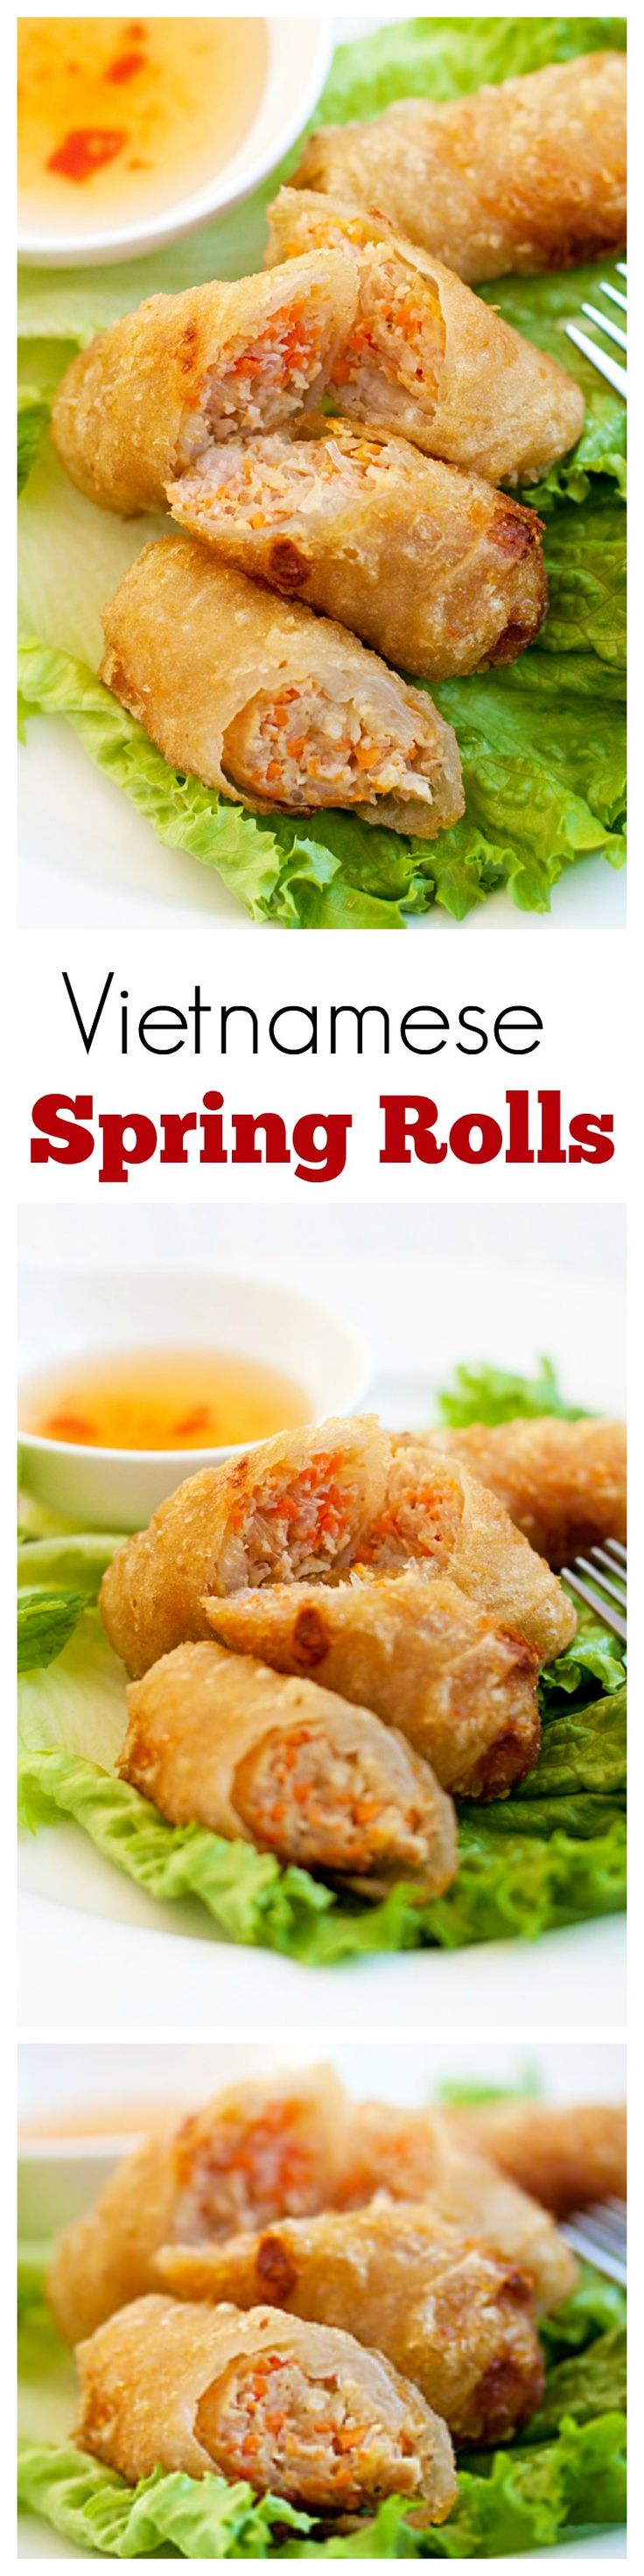 Vietnamese Spring Rolls (Cha Gio) - BEST spring rolls ever deep-fried to crispy perfection. Loaded with crazy delicious filling, a perfect appetizer!! | rasamalaysia.com